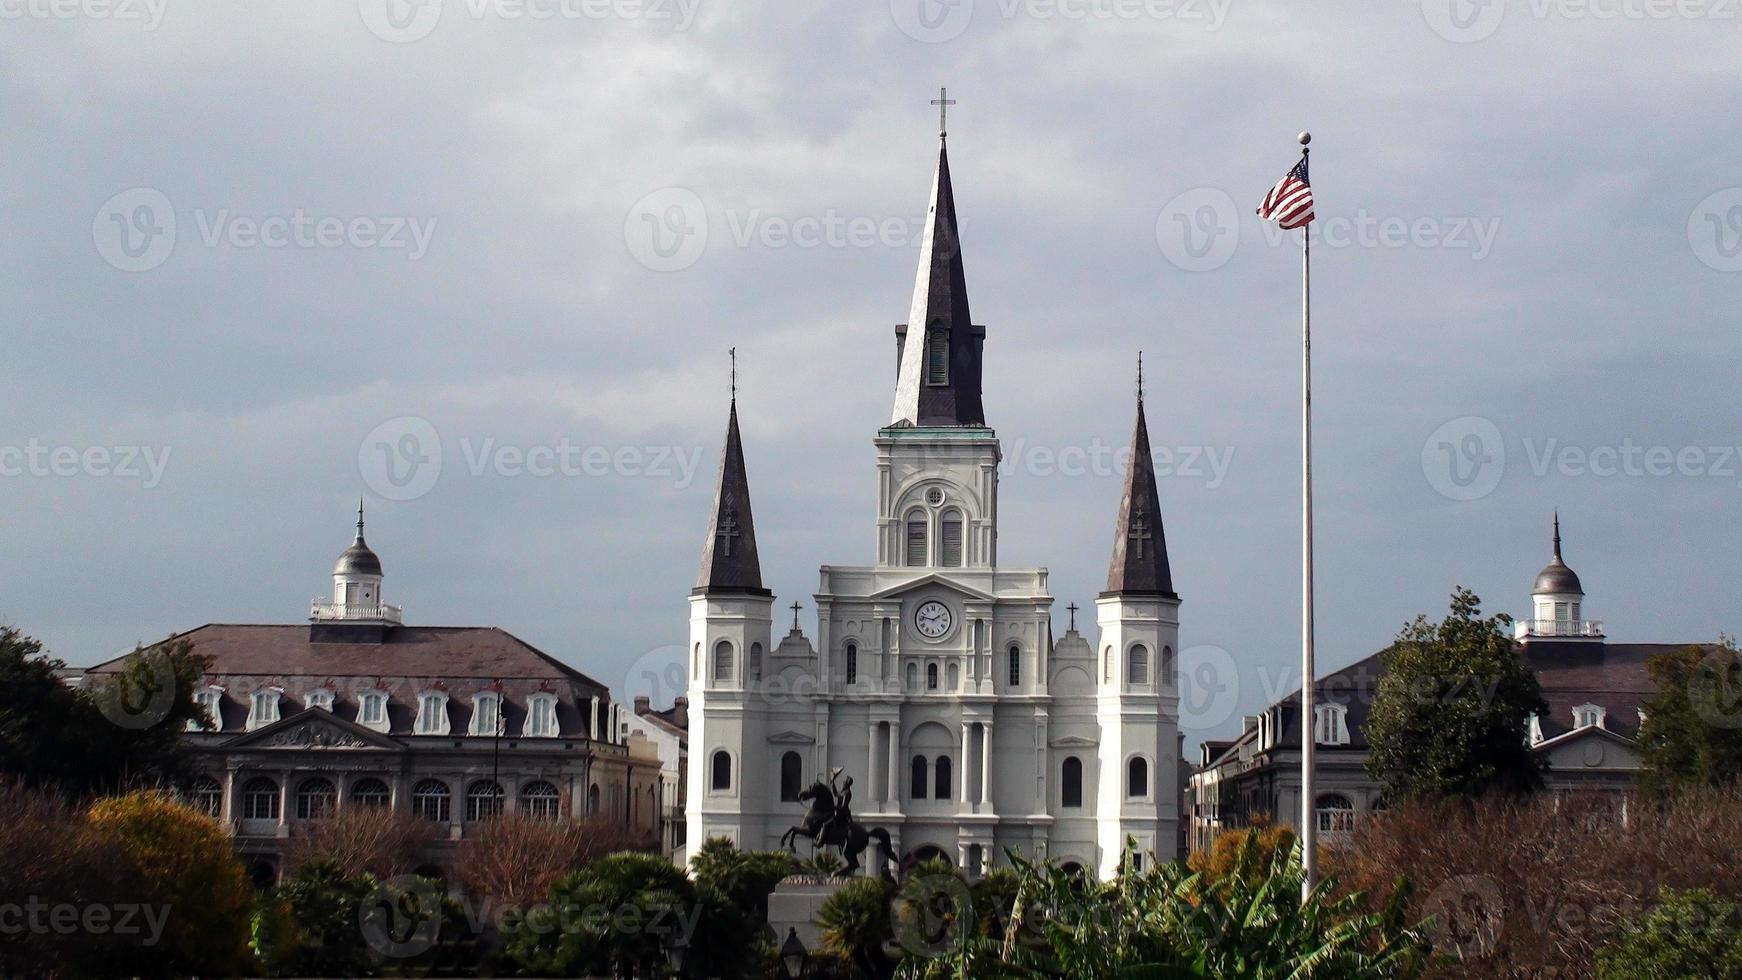 jacksons square st. Louis Cathedral, a New Orleans foto